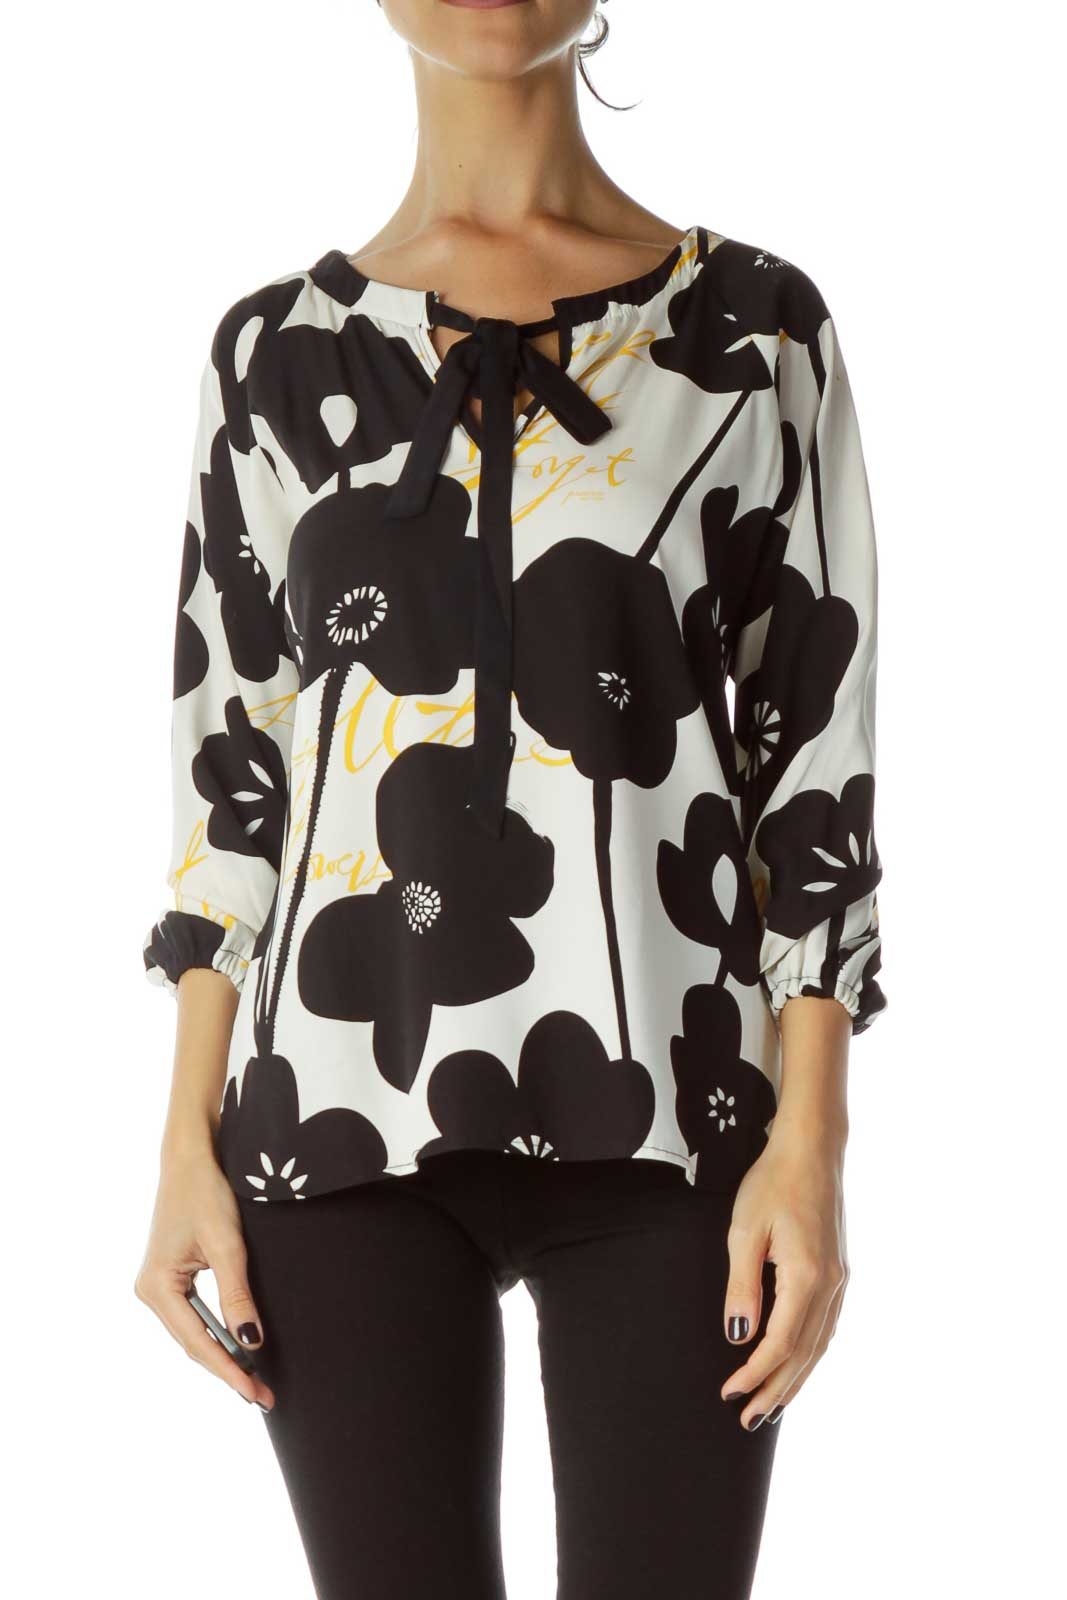 Black White Patterned Blouse Front